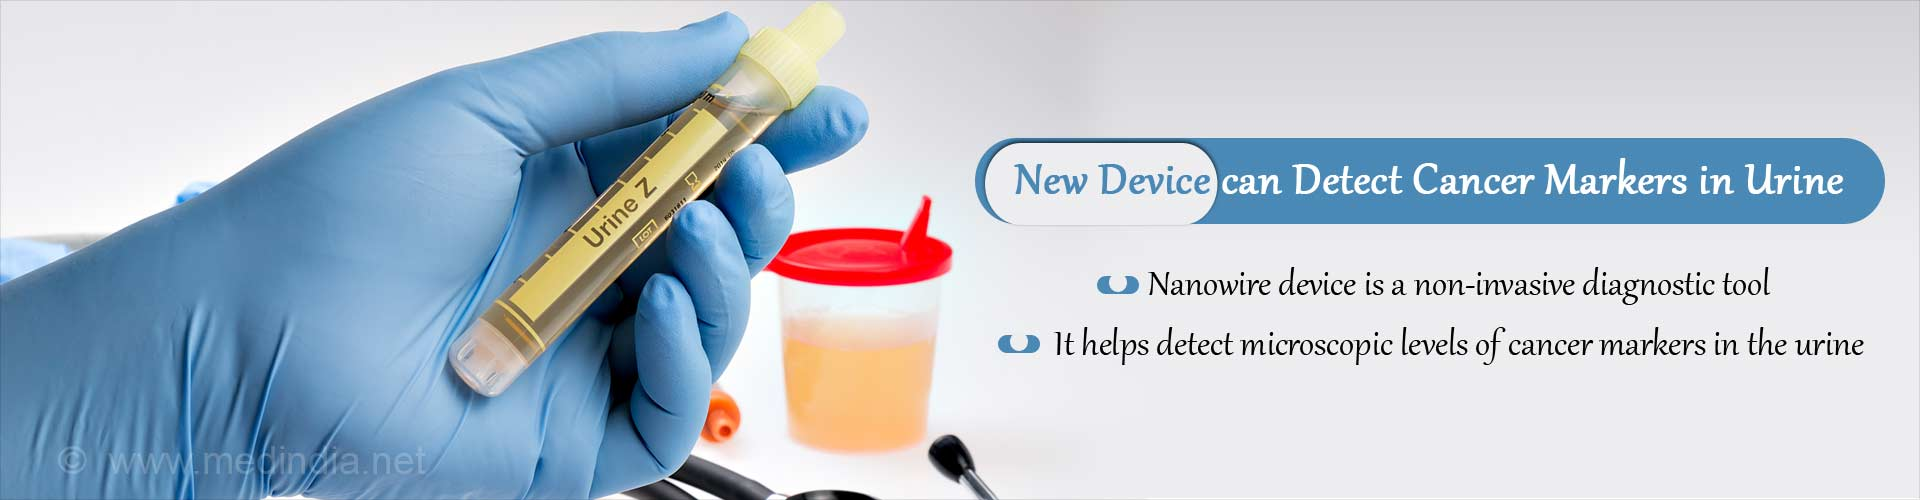 New Nanowire Device Helps Detect Cancer Markers in Urine